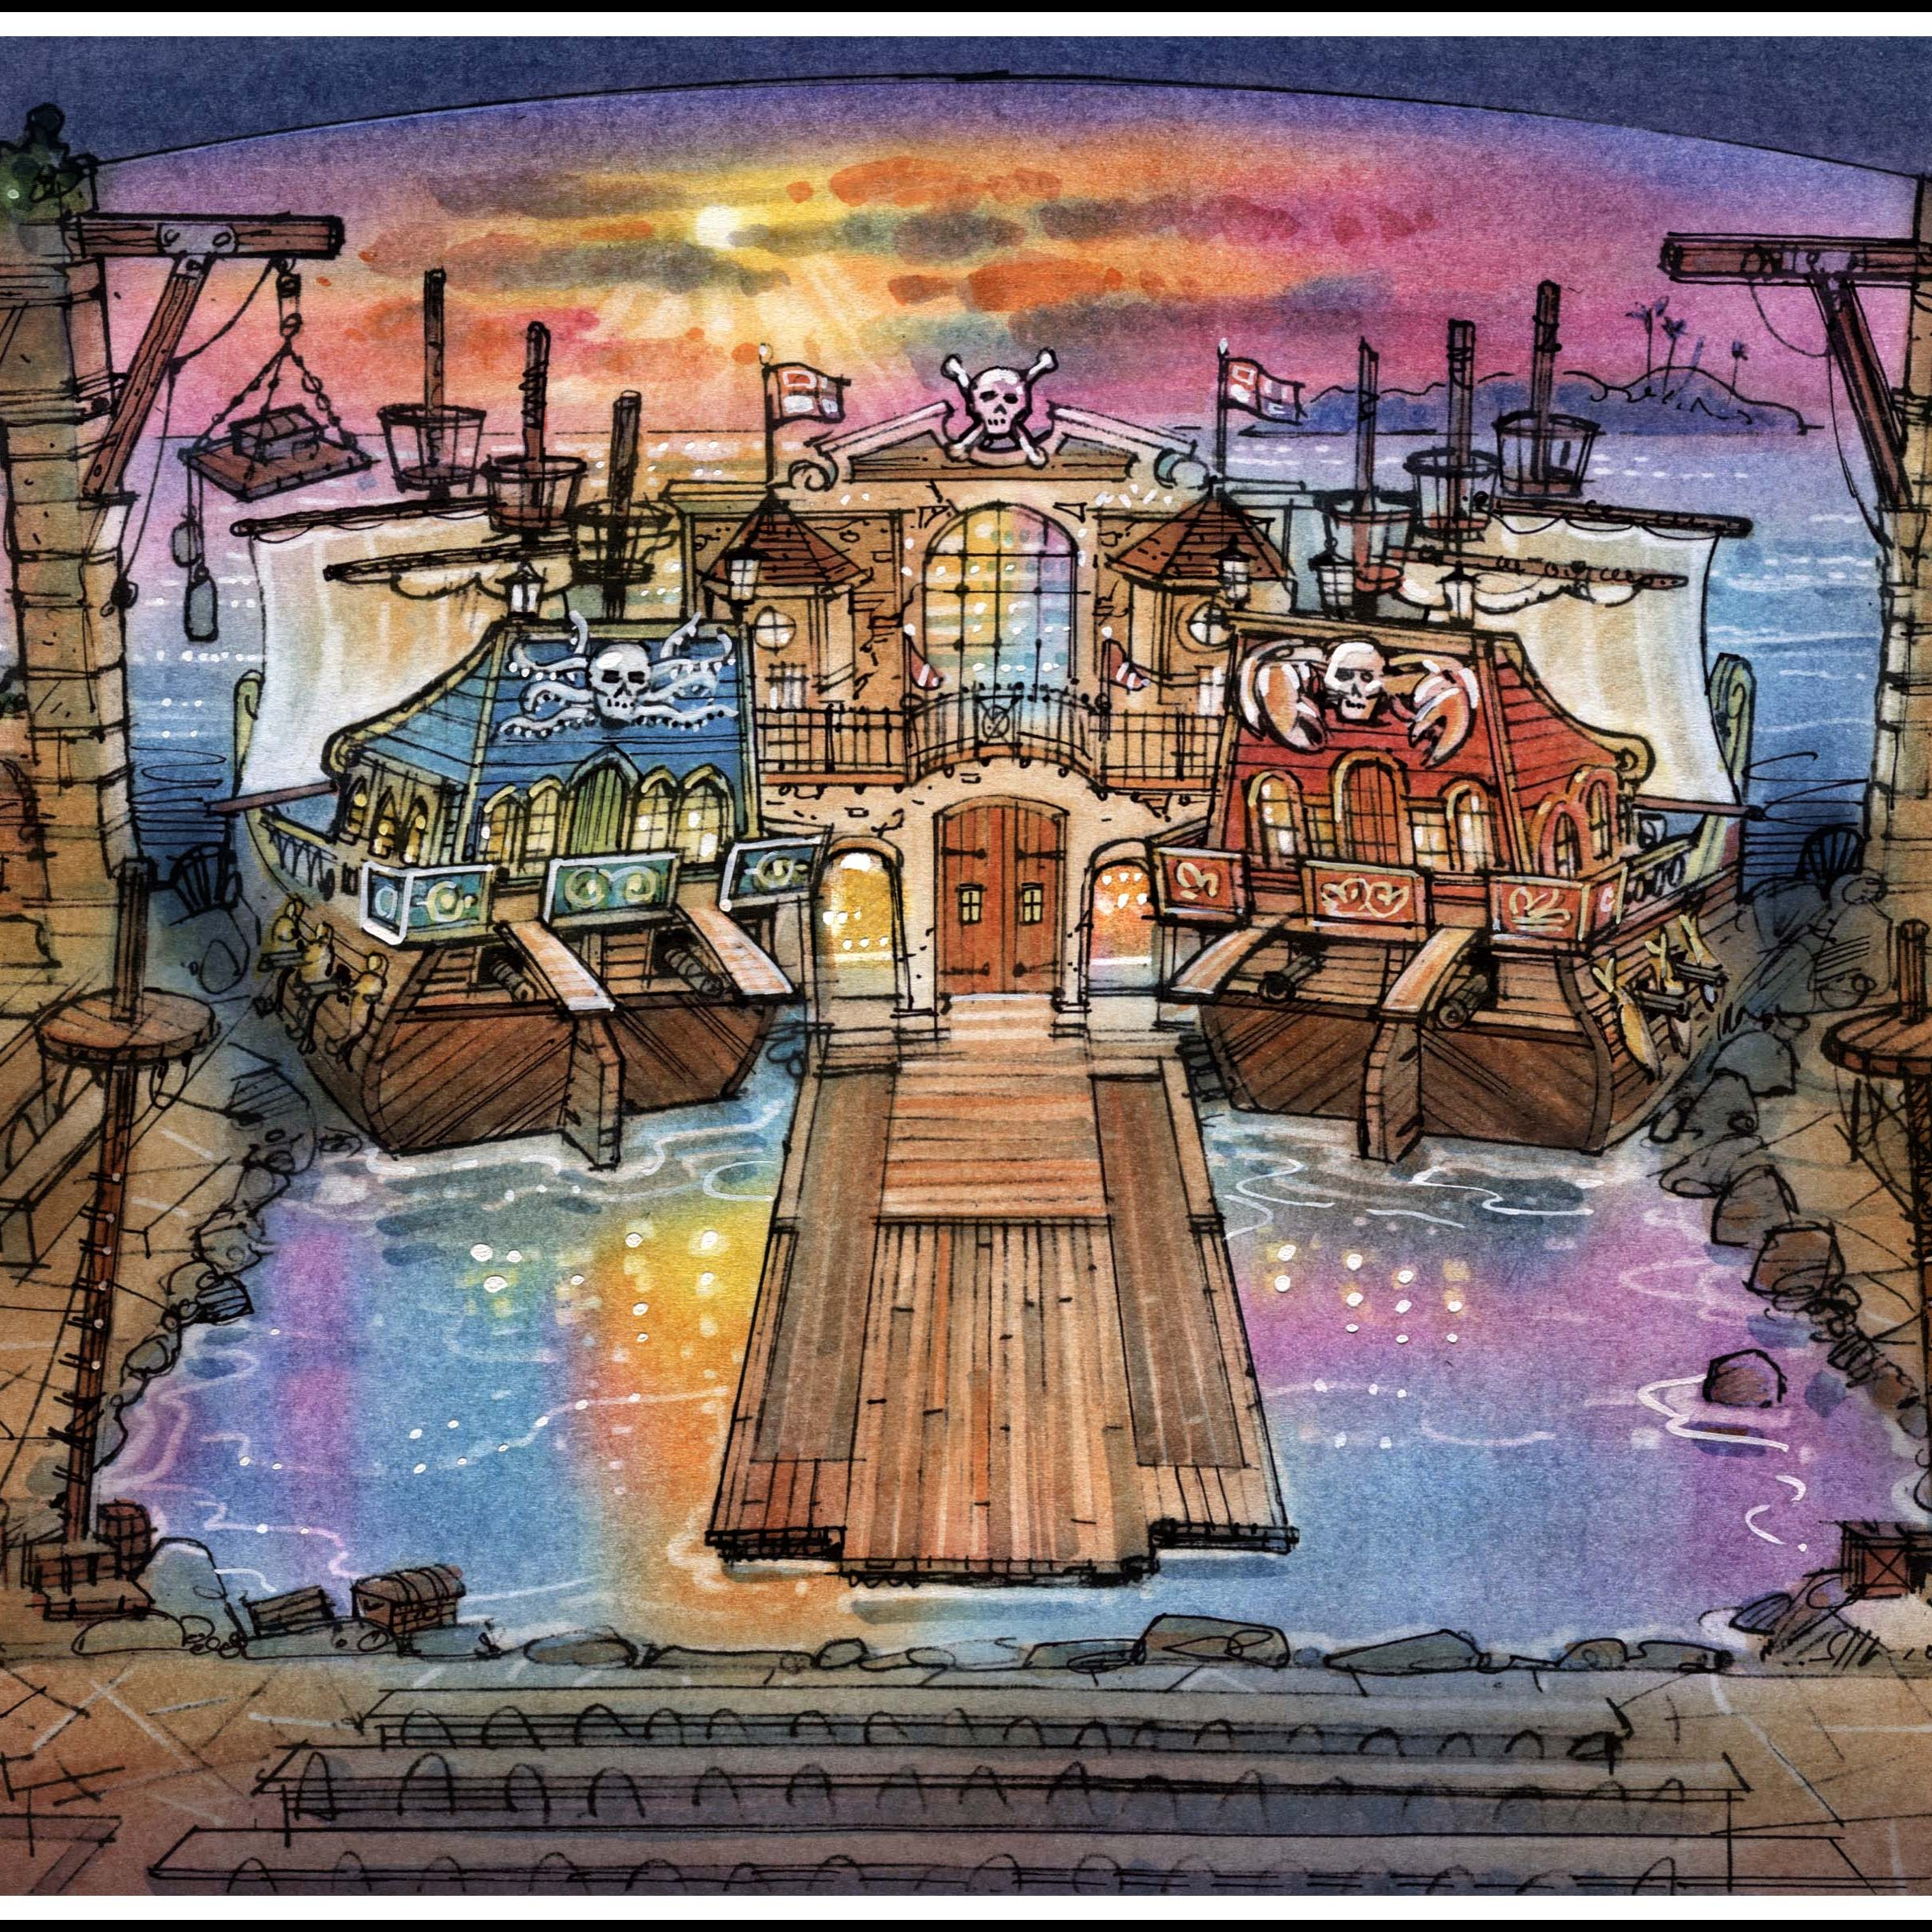 Dolly Parton's Pirates Voyage in Pigeon Forge is coming together, taking reservations